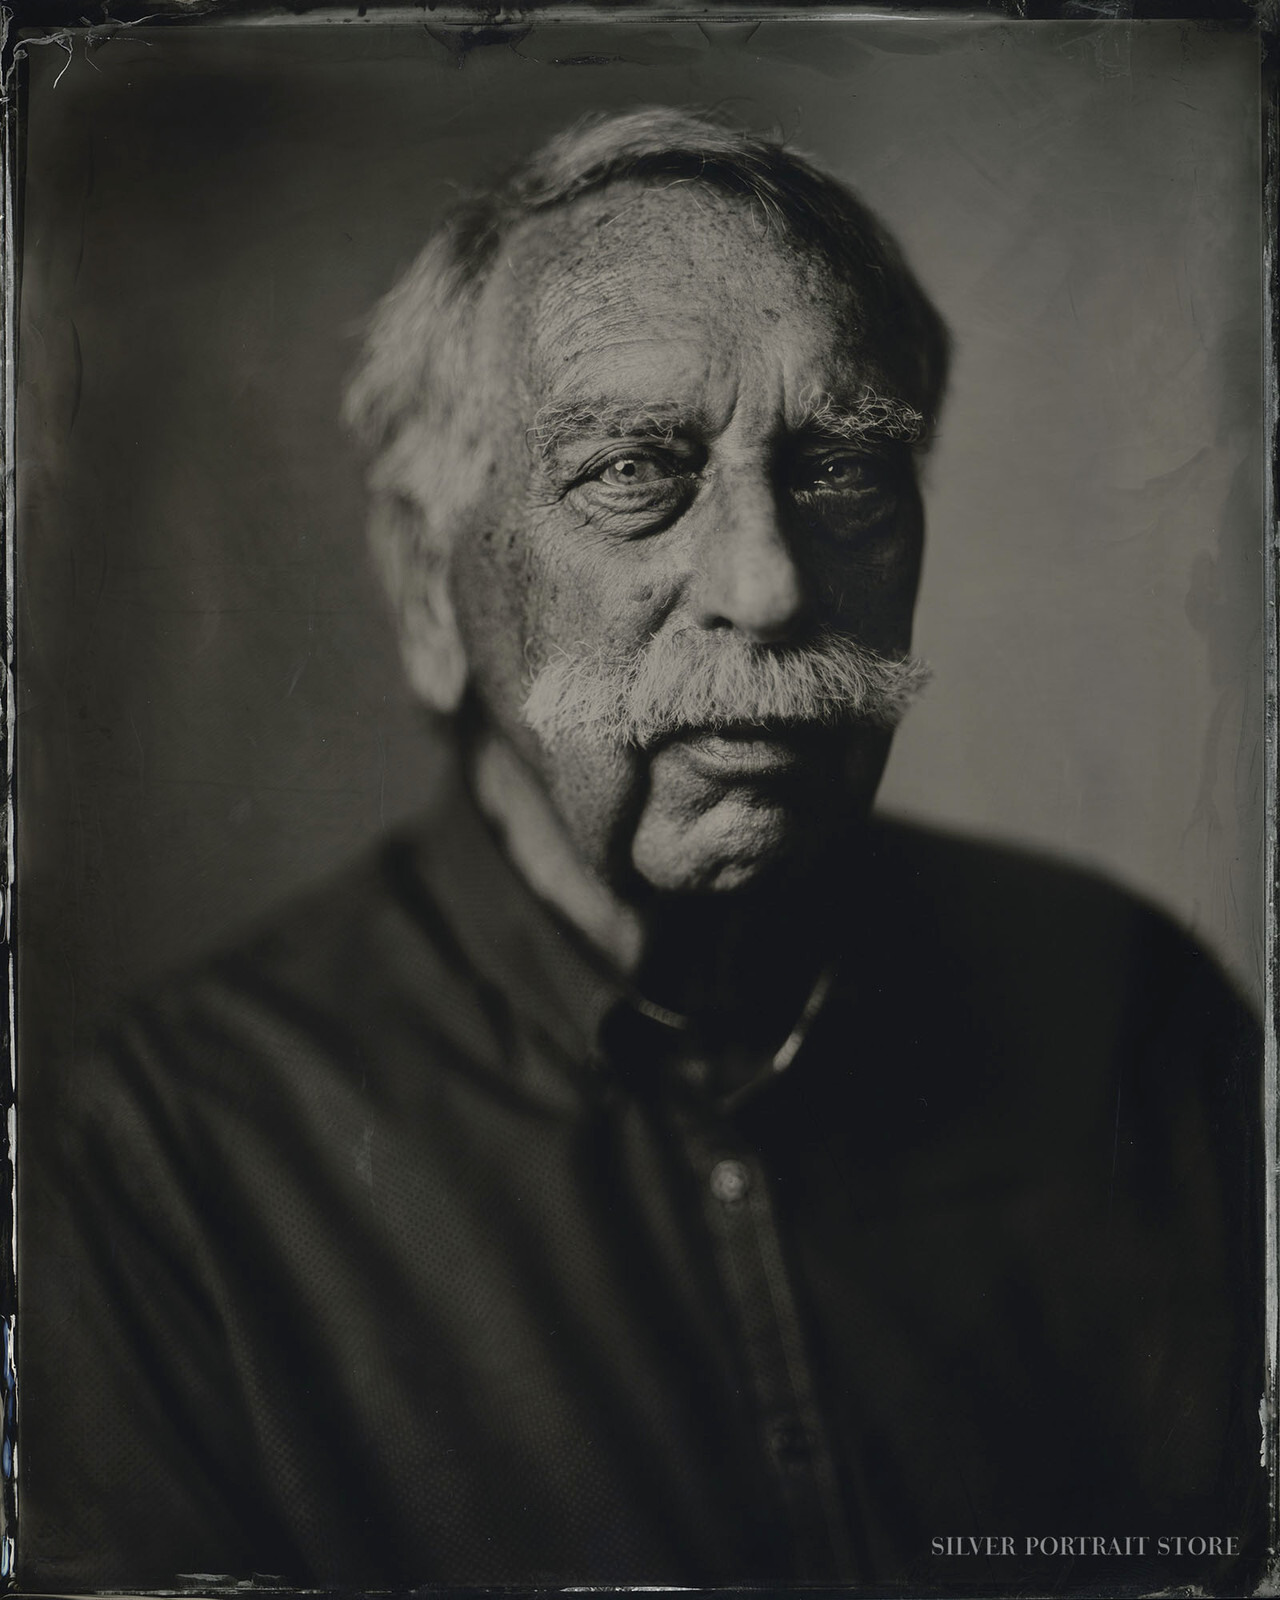 Frits-Silver Portrait Store-Wet plate collodion-Tintype 20 x 25 cm.